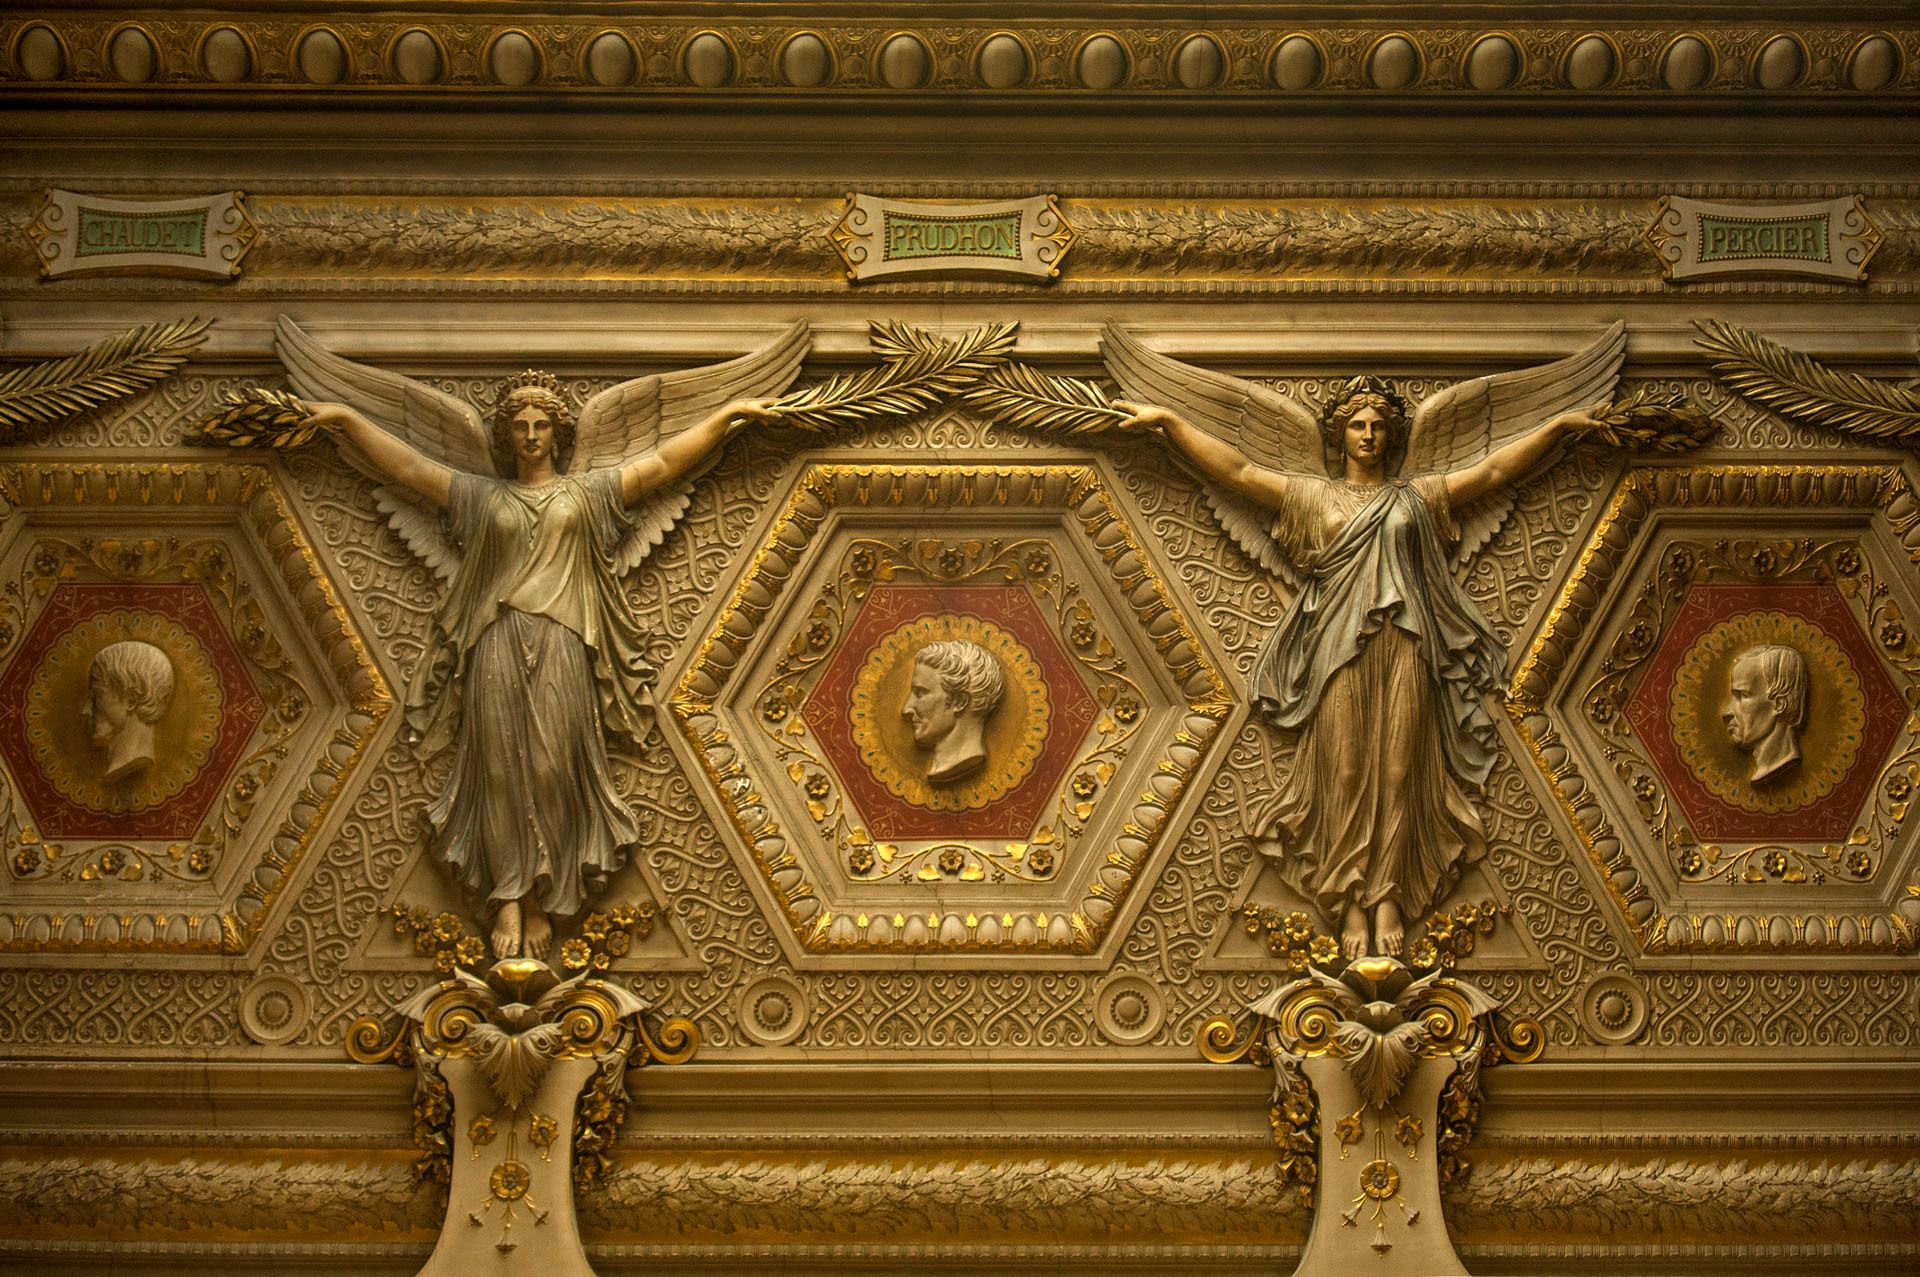 Interior detail with winged angels, Louvre Museum, Paris, France